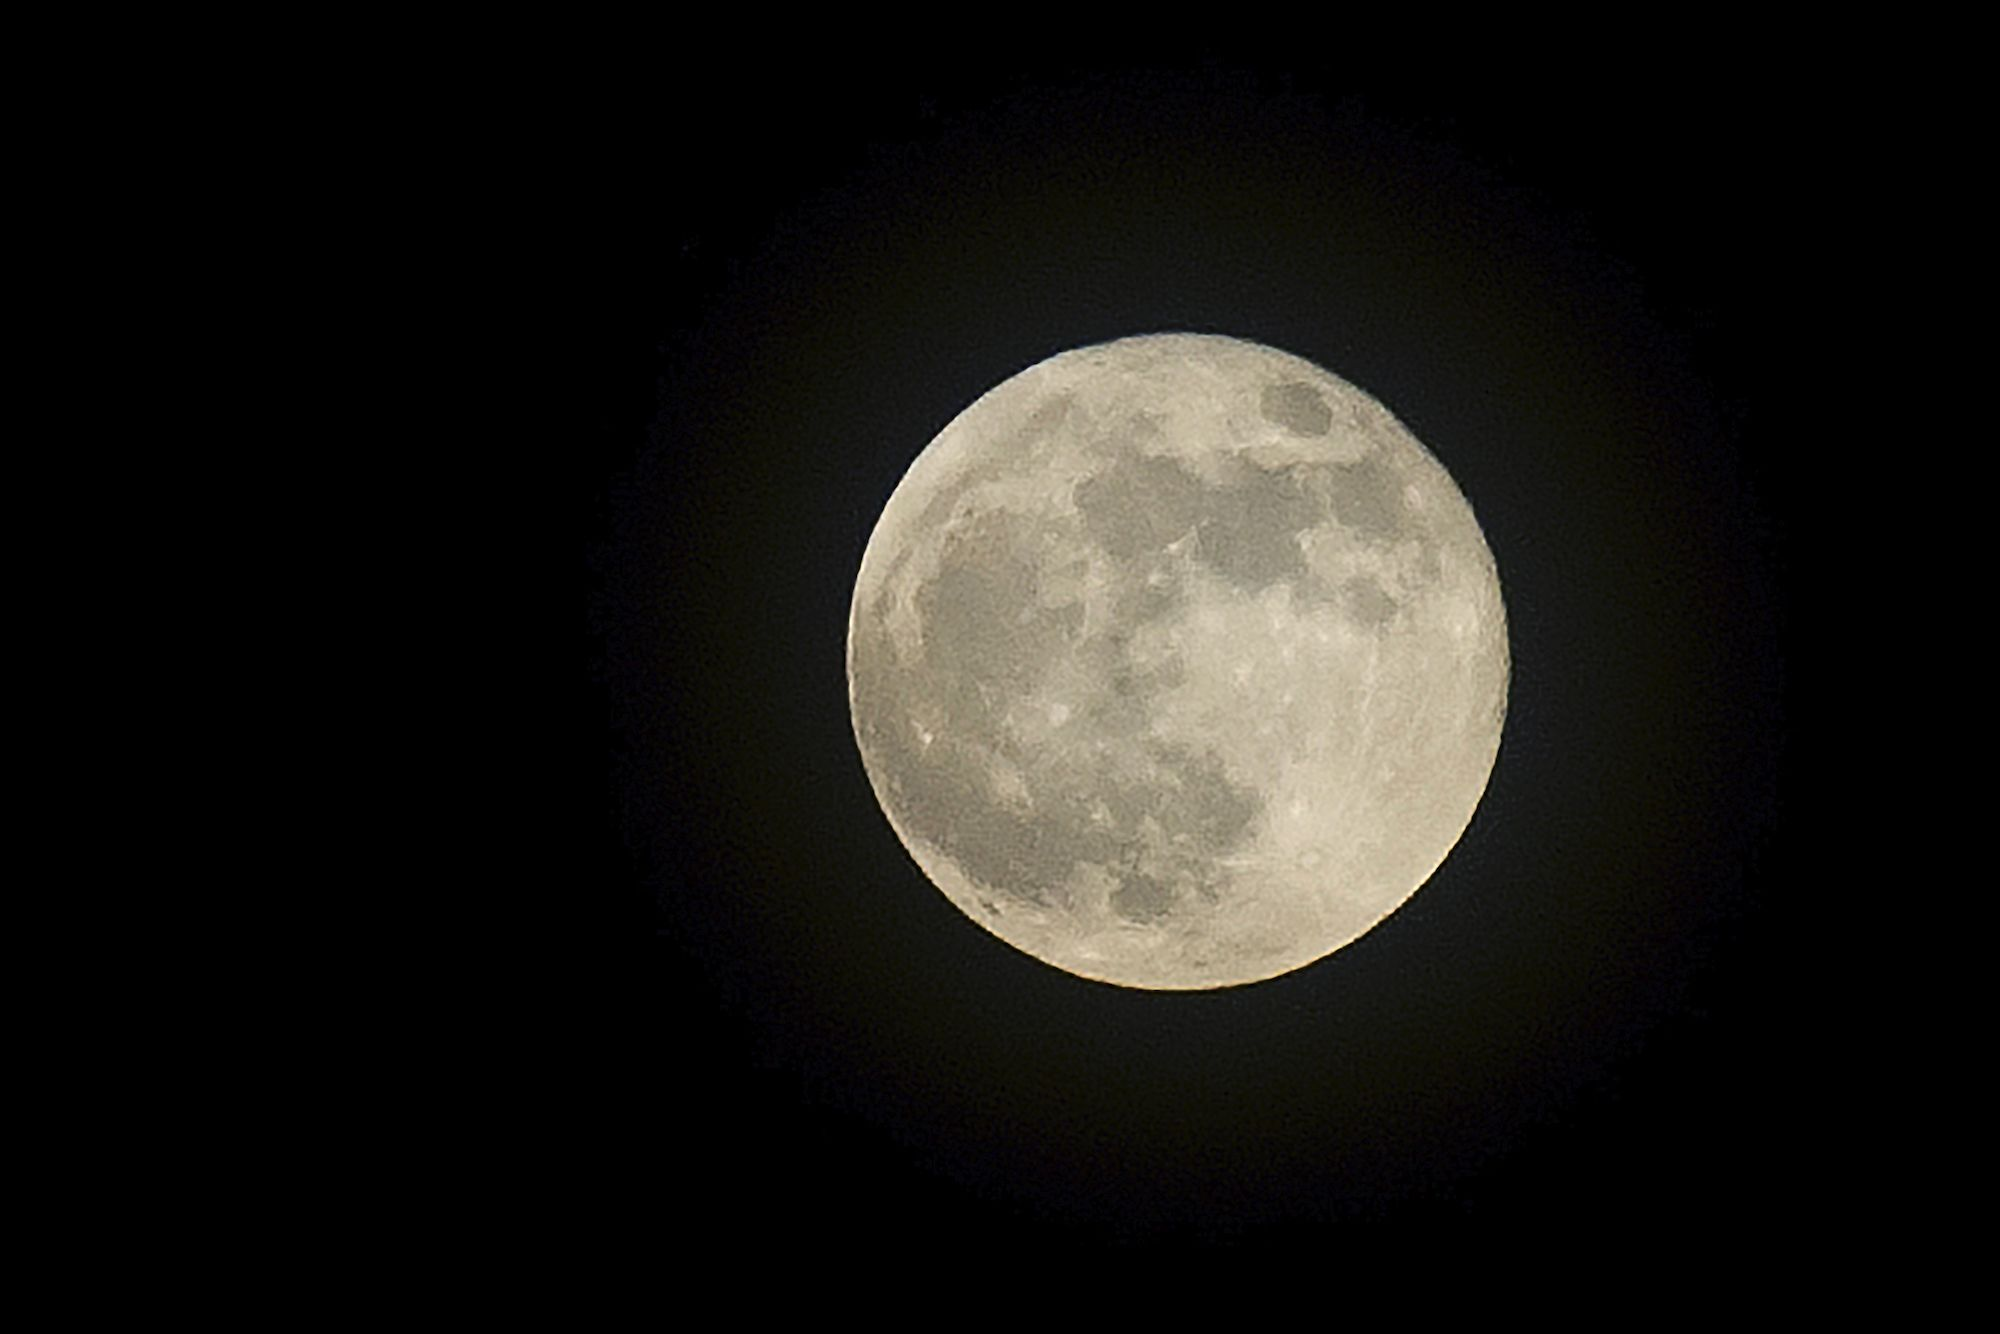 The Biggest Full Moon Of The Year Will Be On Full Display Next Week